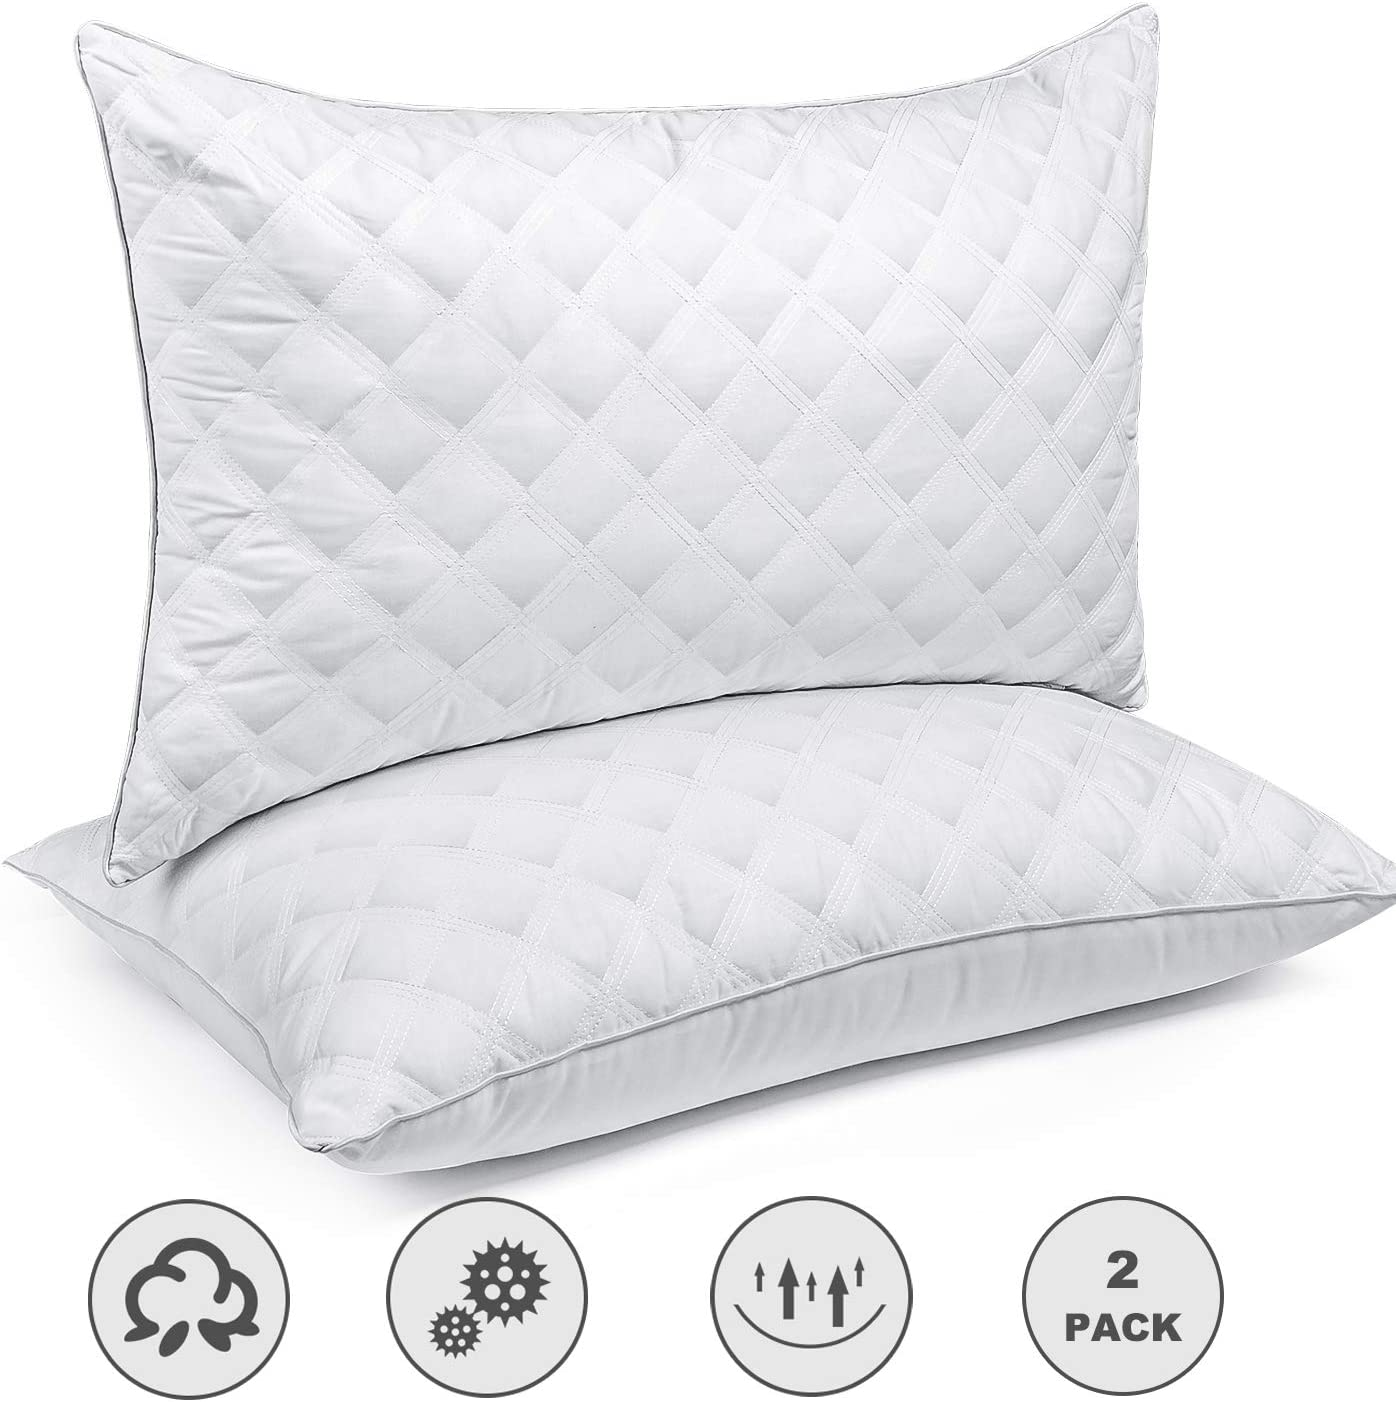 Bed Pillows for Sleeping(2-Pack) Luxury Hotel Collection Gel Pillow Good for Side and Back Sleeper & Hypoallergenic-Standard Size